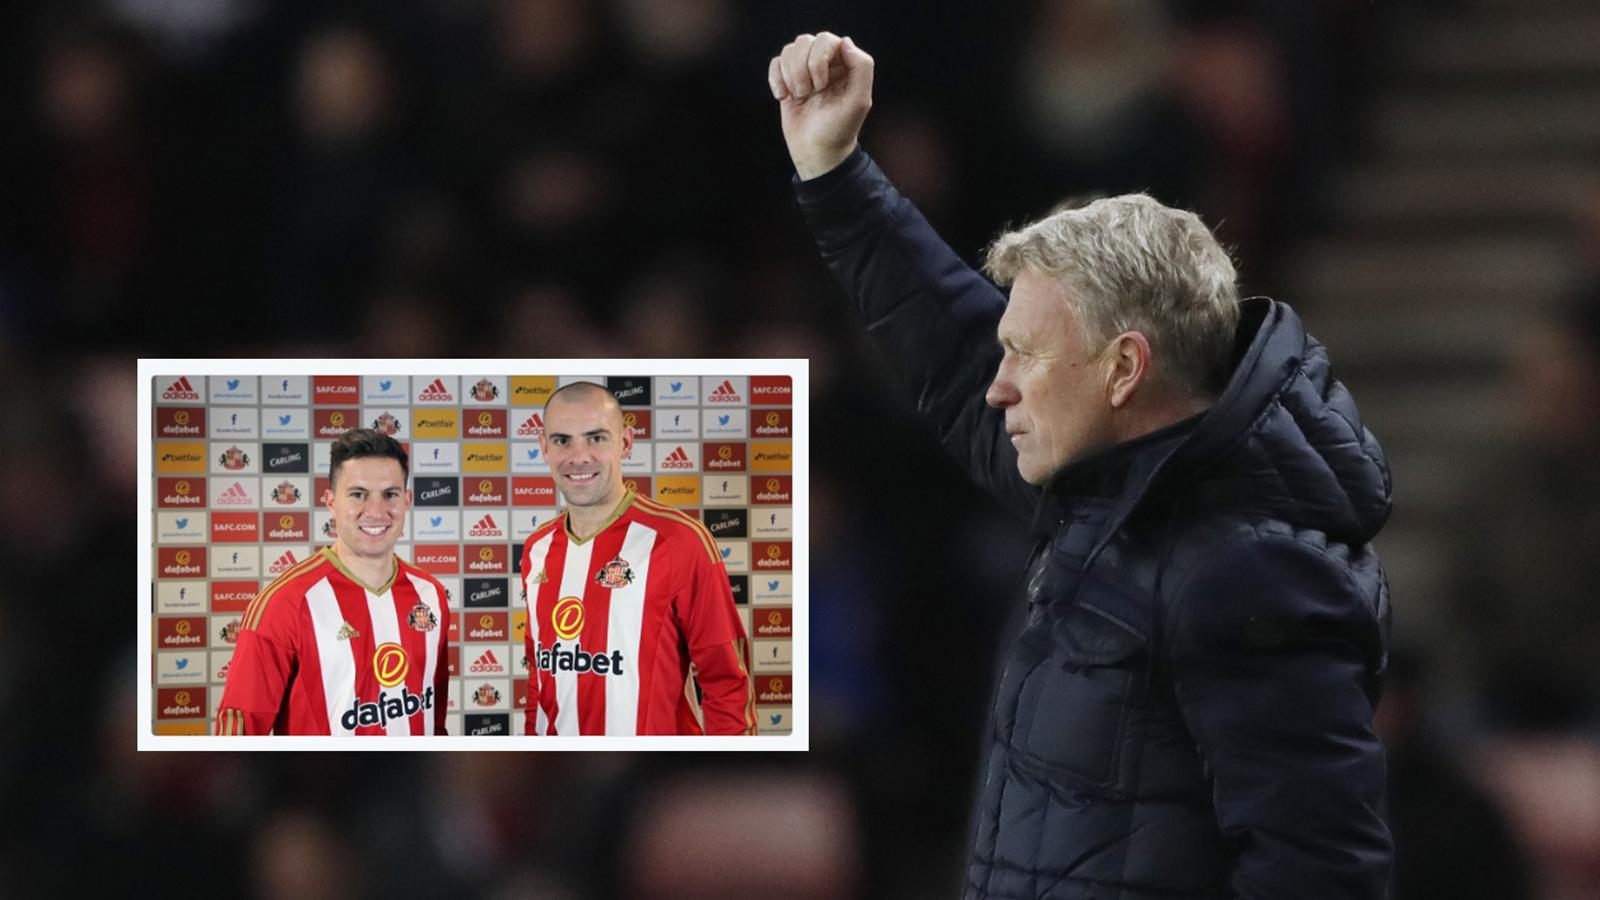 David moyes is one player shy of forming a sunderland xi - University league tables french ...